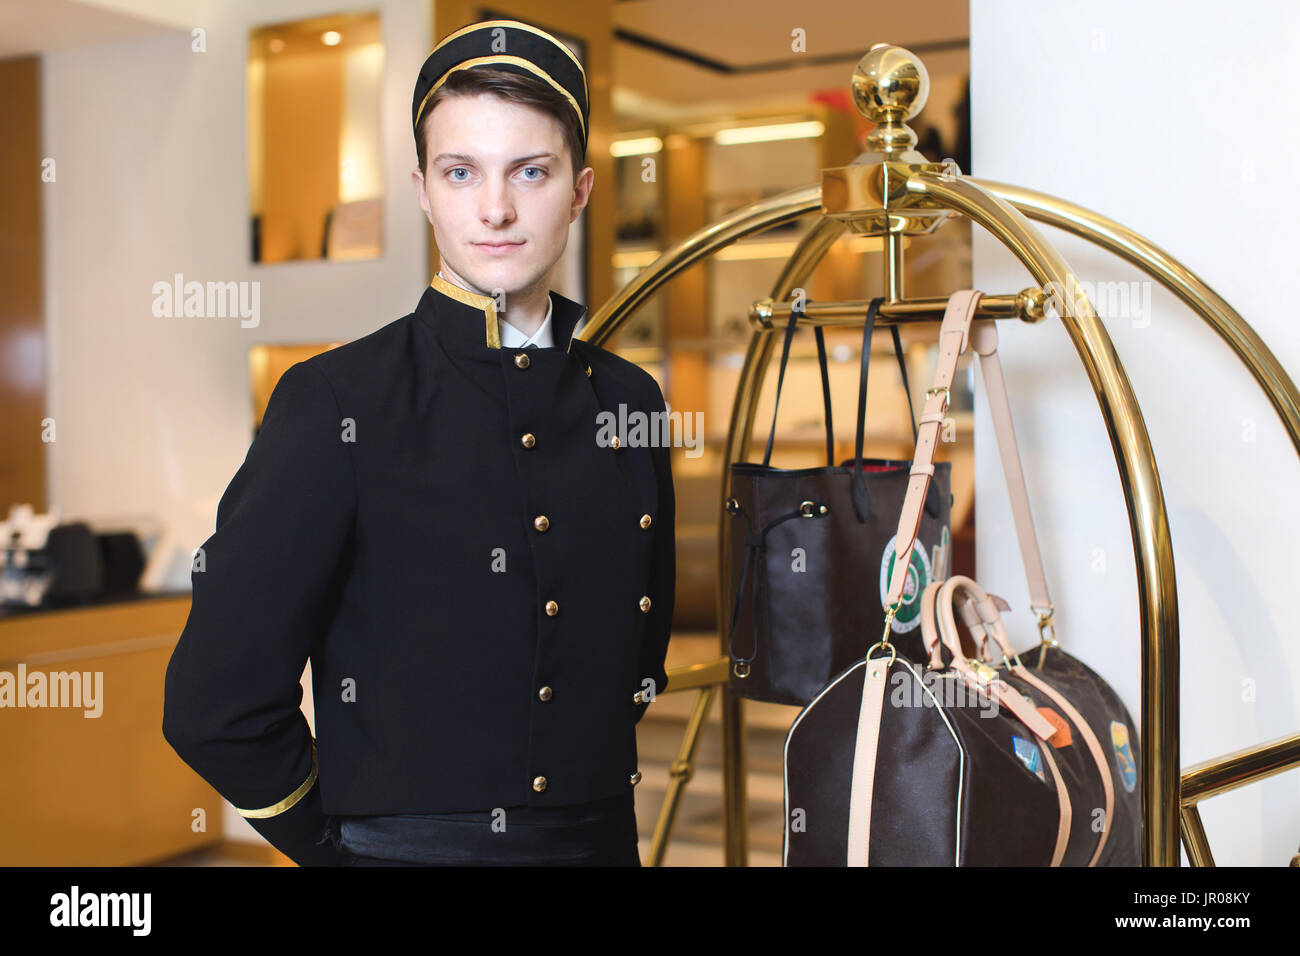 Young man in uniform serving in hotel - Stock Image